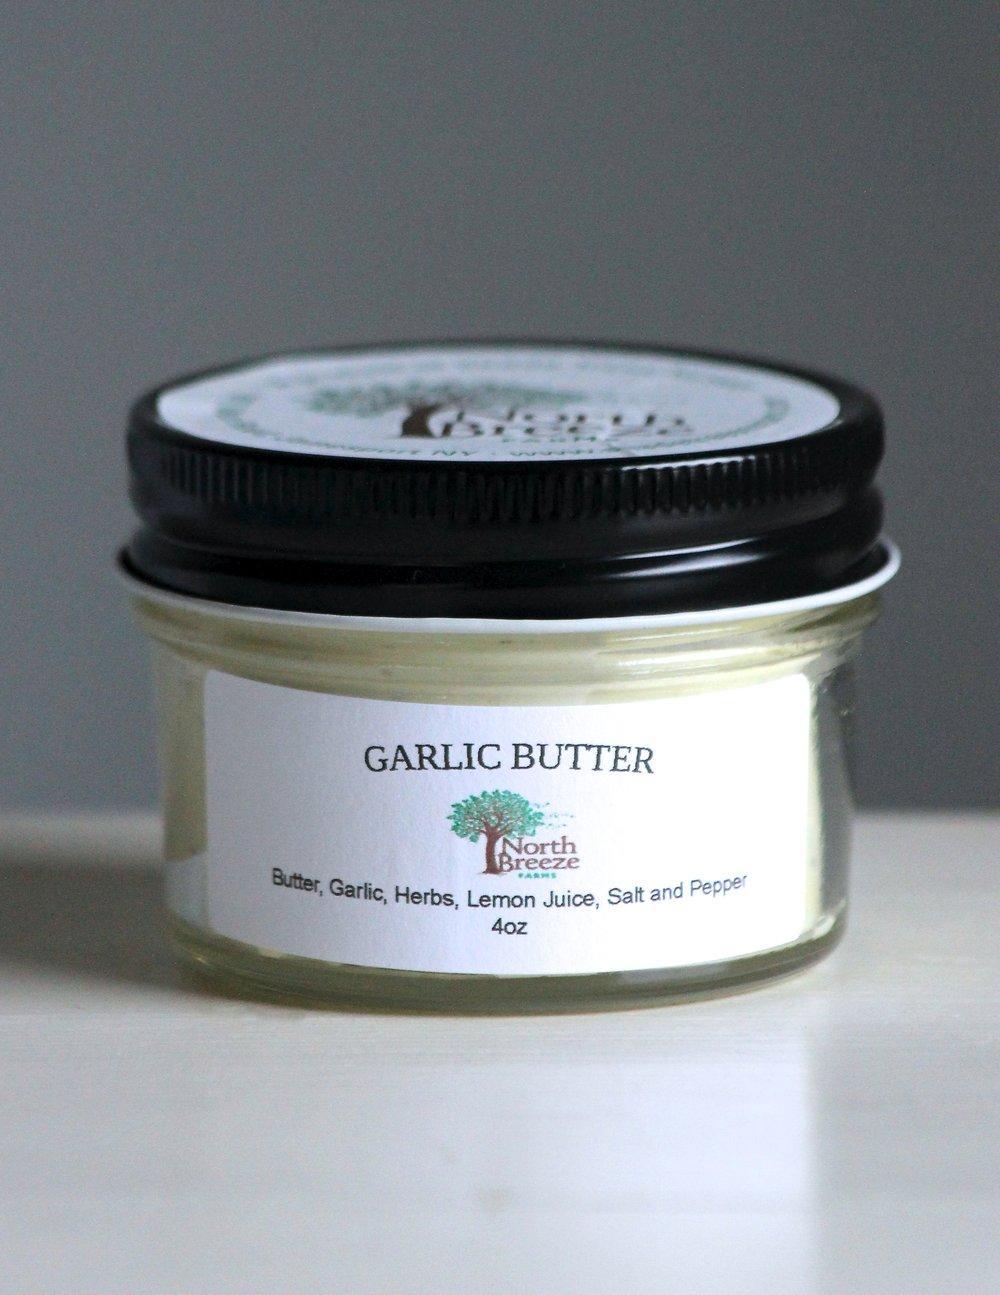 Garlic Butter 4oz $6.50